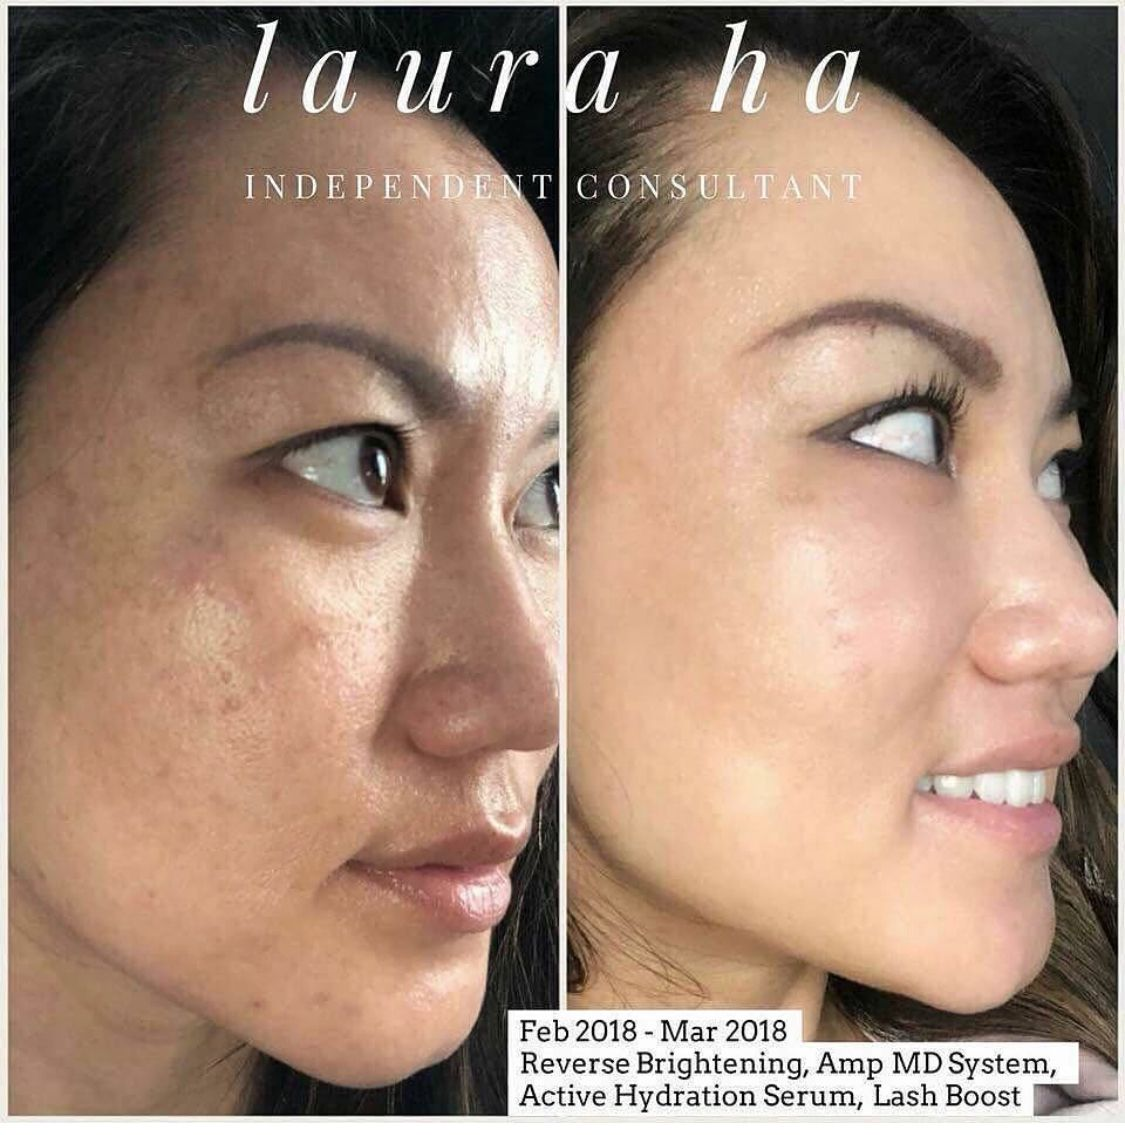 Reverse Brightening Regimen Is A 4 Step Skin Care Routine To Treat Dull Complexion Uneve Rodan And Fields Regimen Rodan And Fields Rodan And Fields Consultant